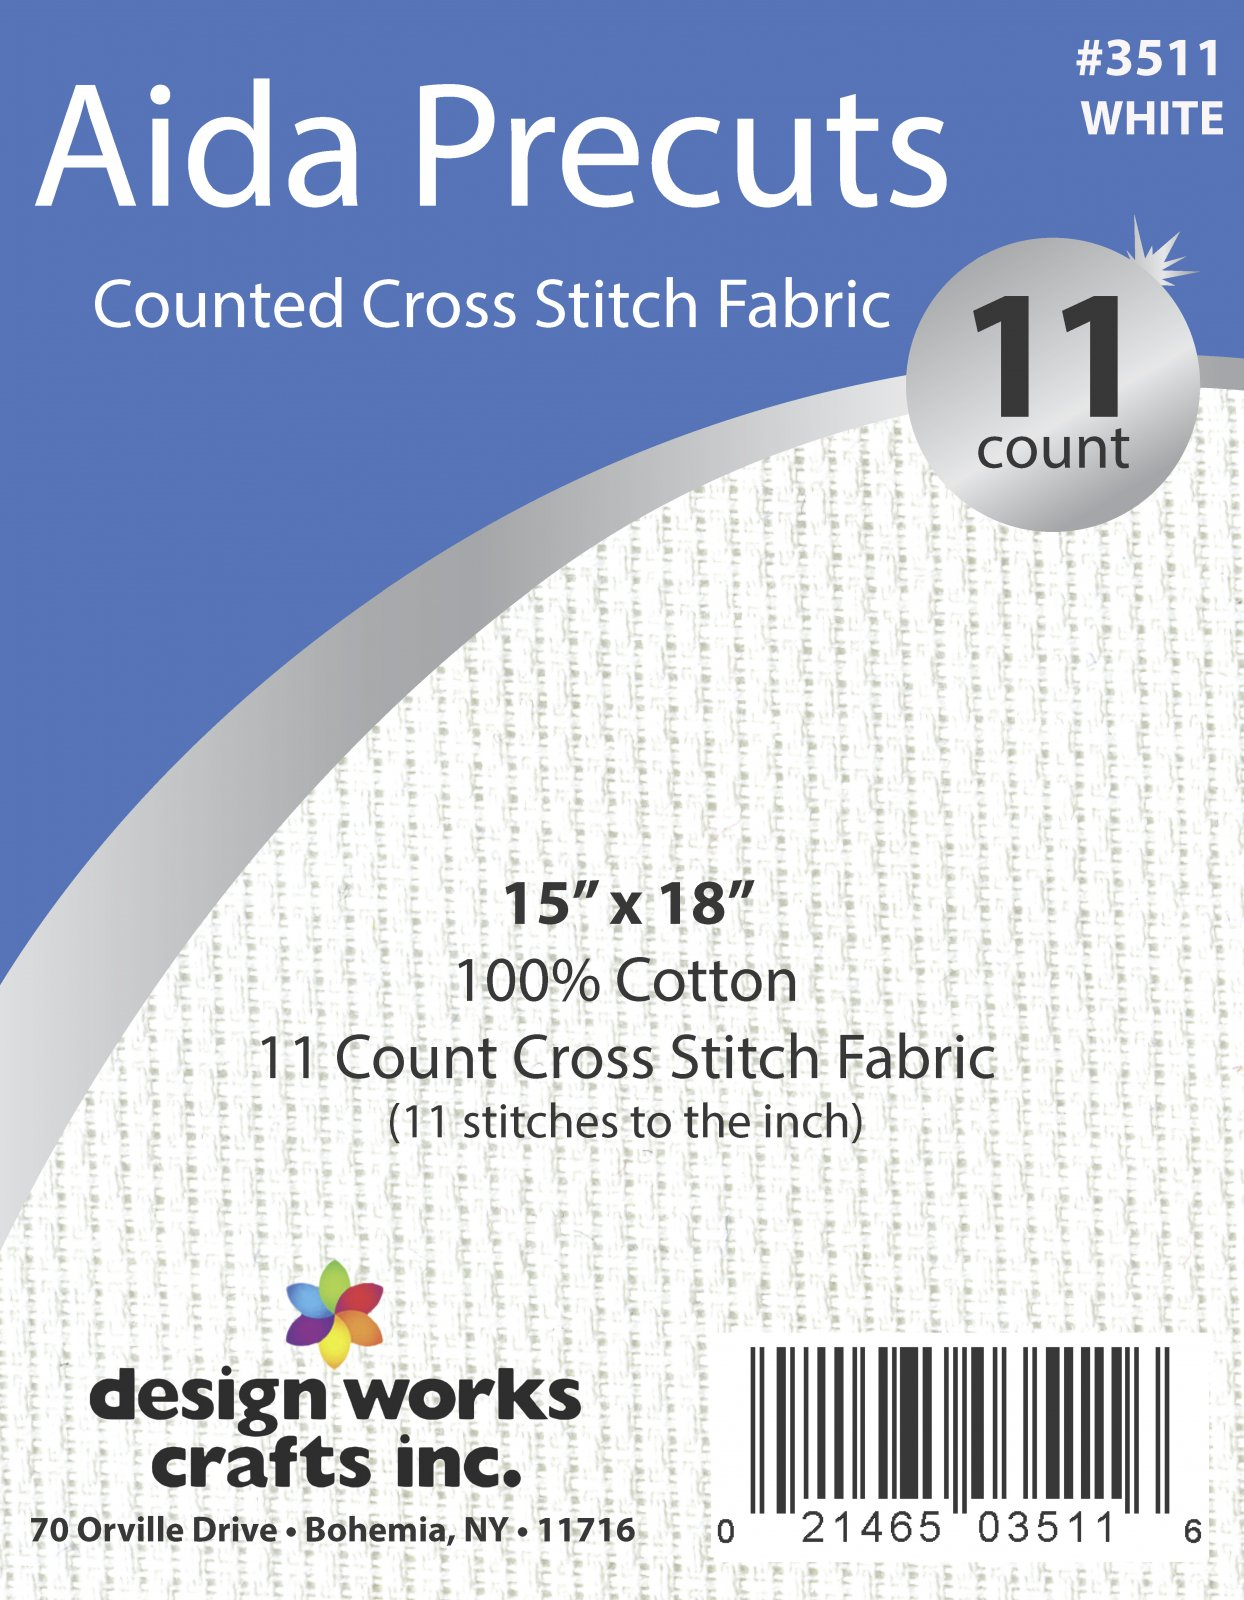 # 3511 - 11 Ct. Aida Pre-cut Counted Cross Stitch Fabric/White - 15 x 18